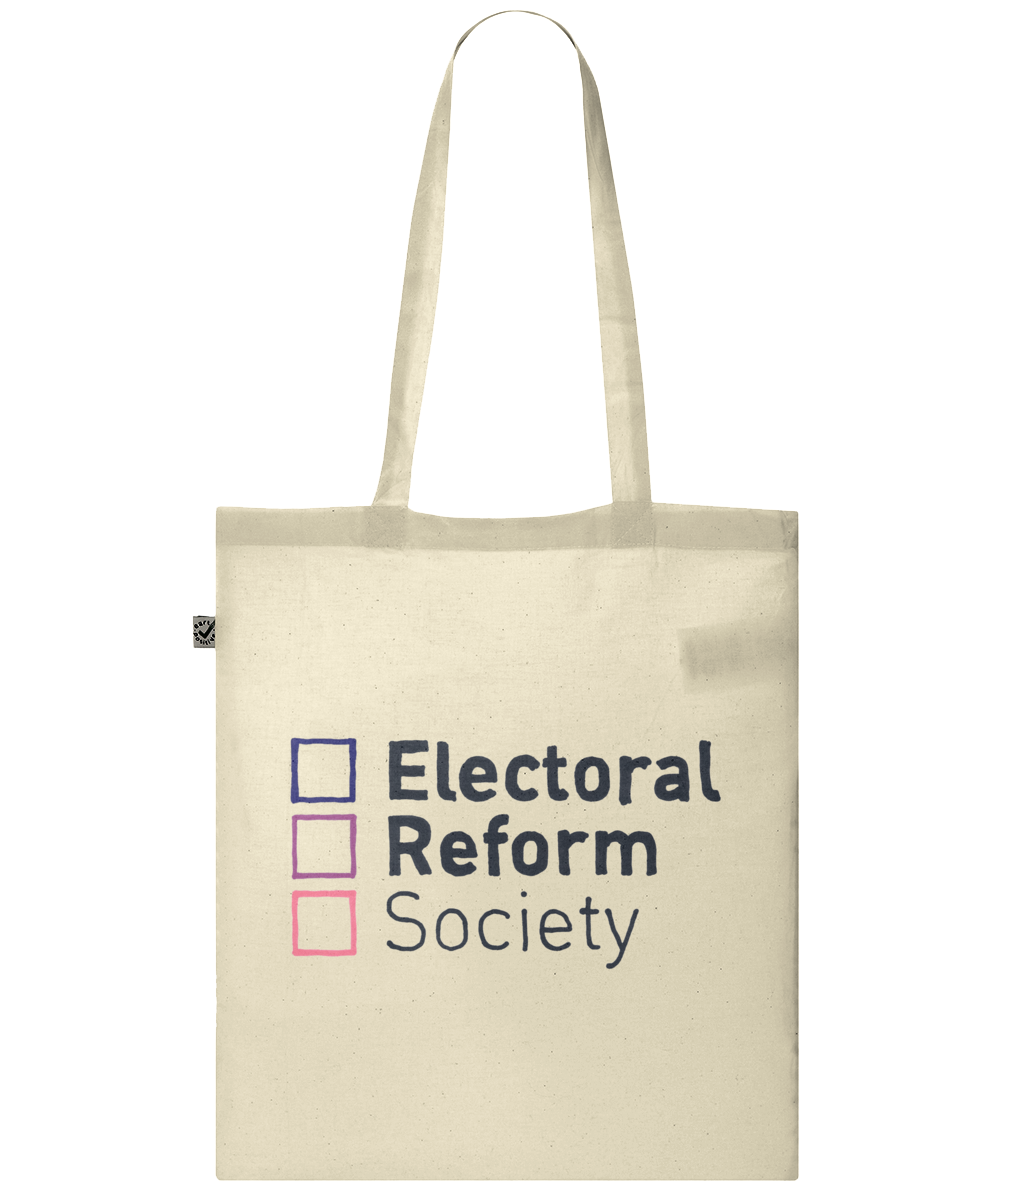 Electoral Reform Society Tote Bag